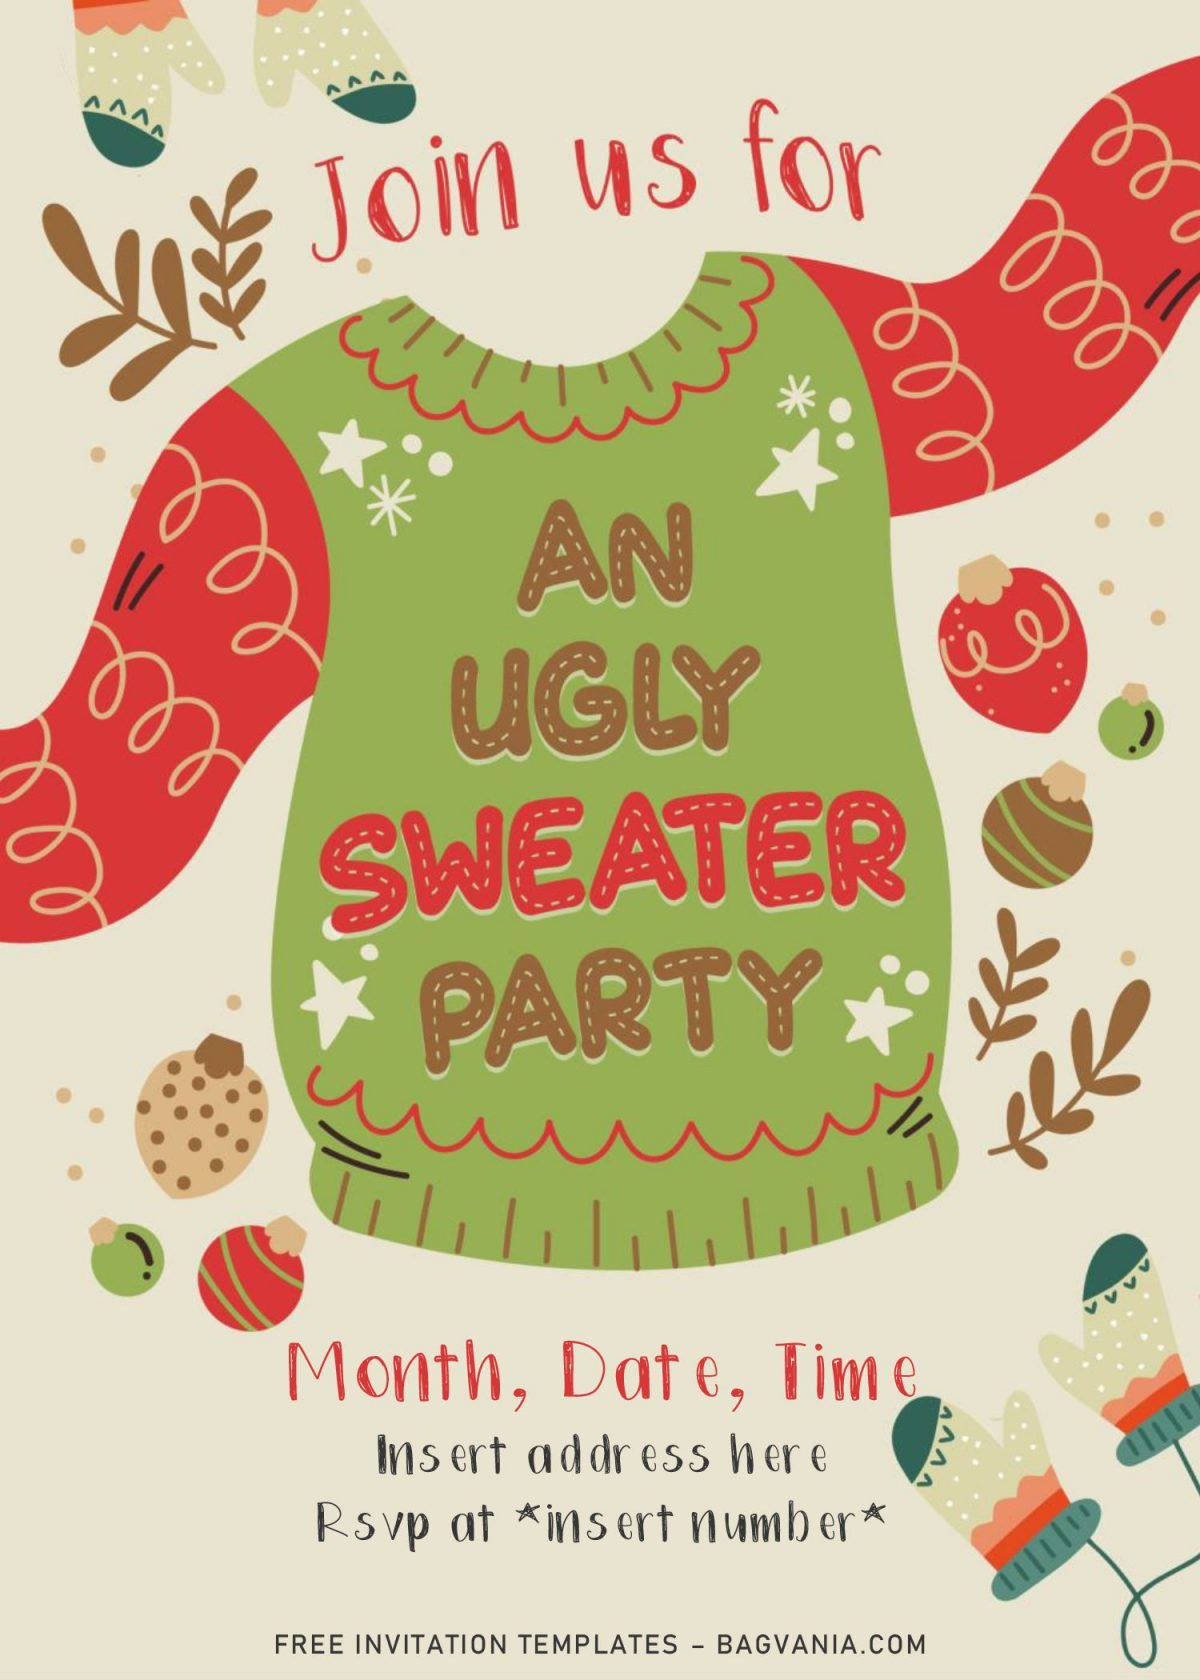 Free Winter Ugly Sweater Birthday Party Invitation Templates For Word and has Christmas ugly sweater